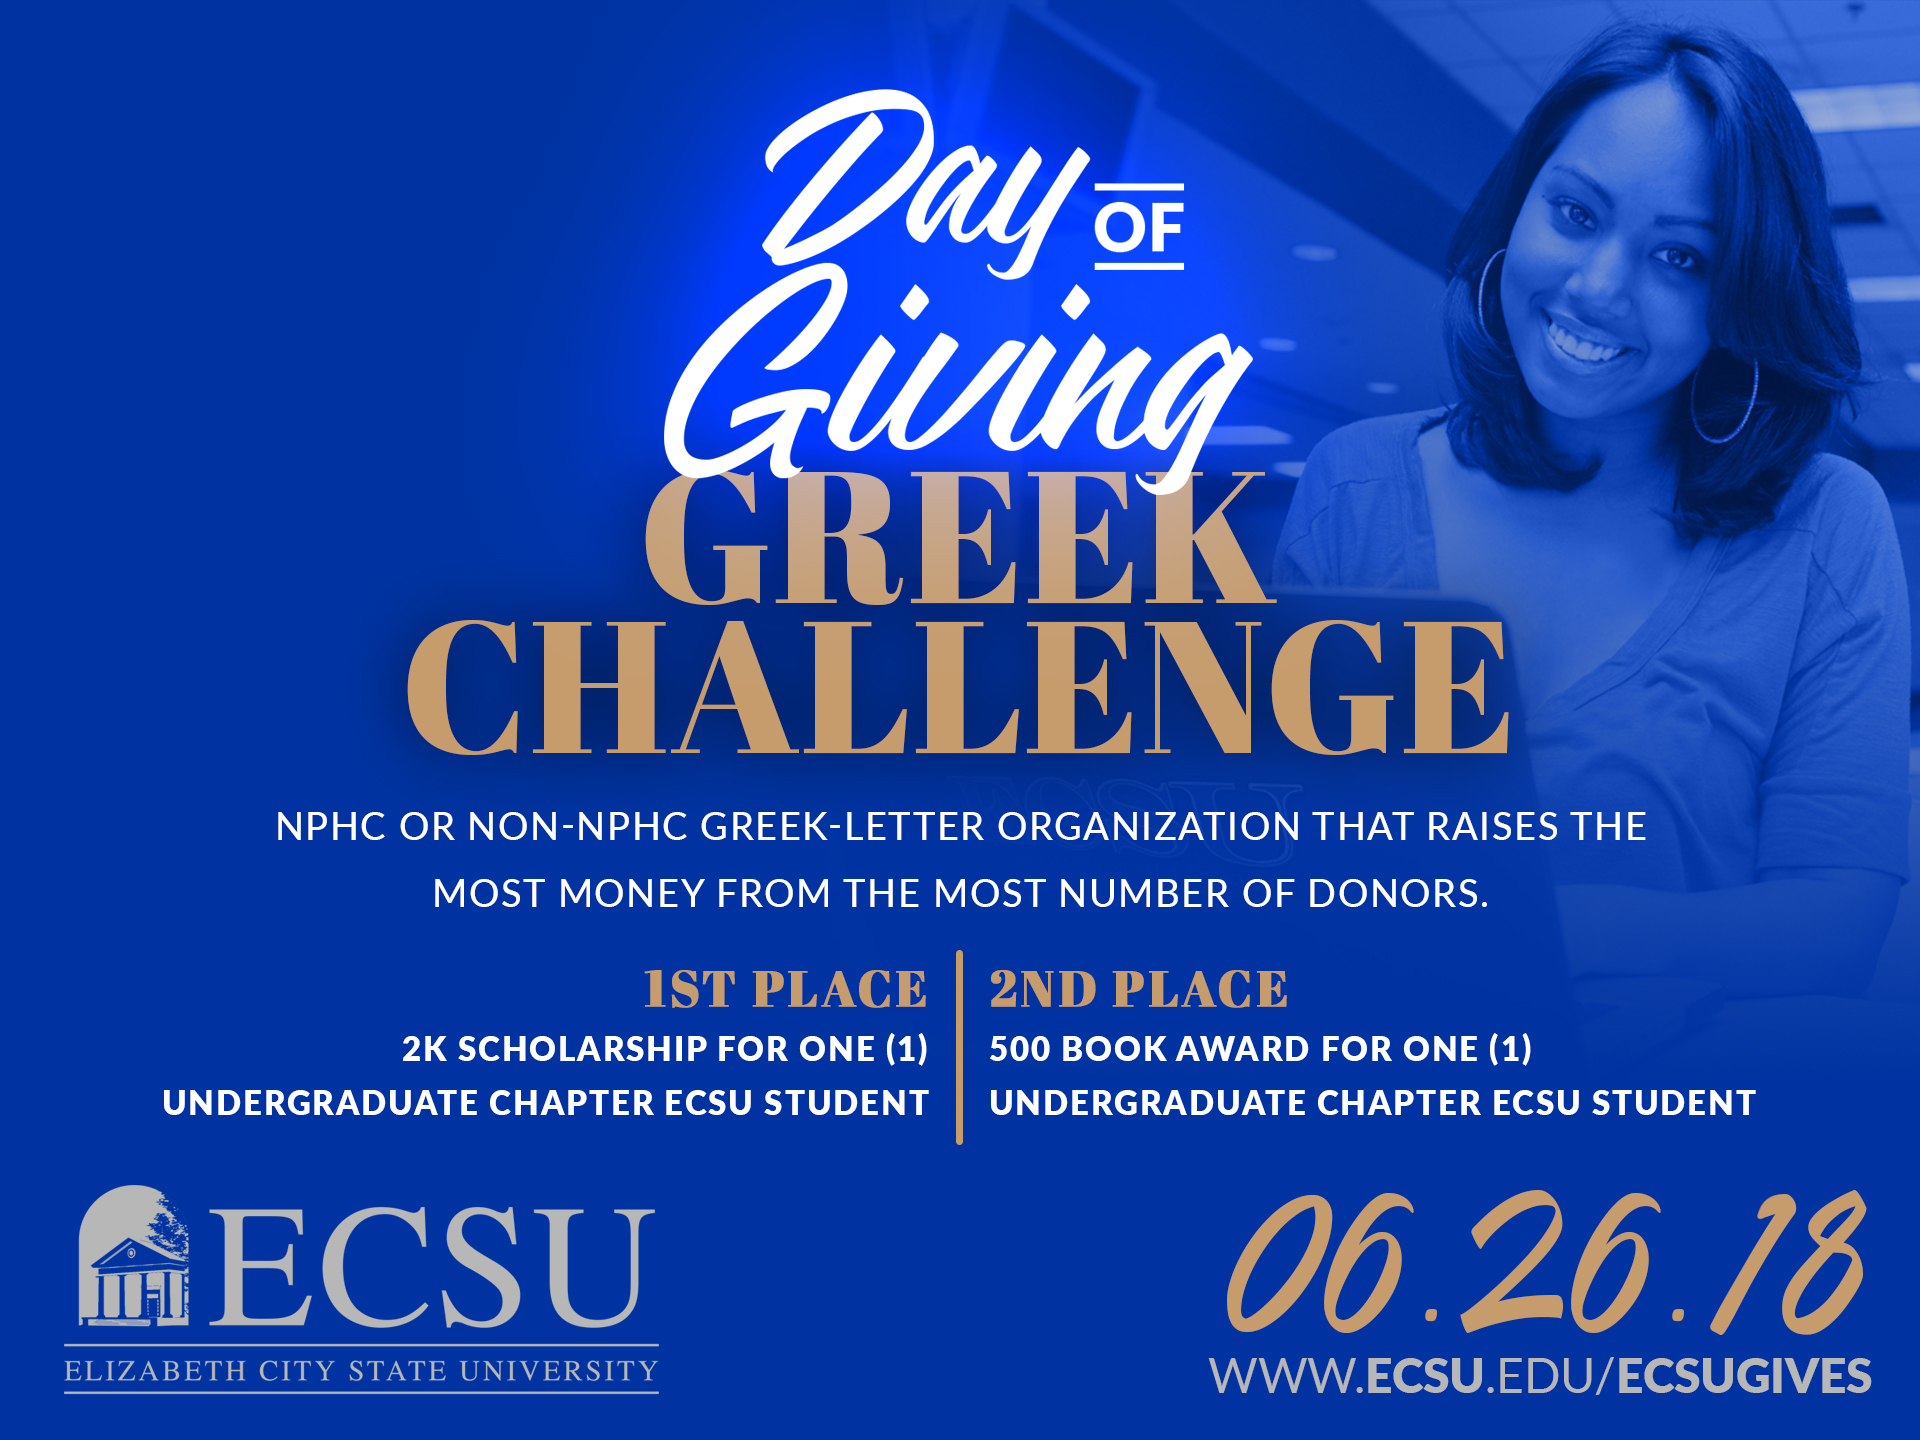 Ecsu day of giving greek challenge5